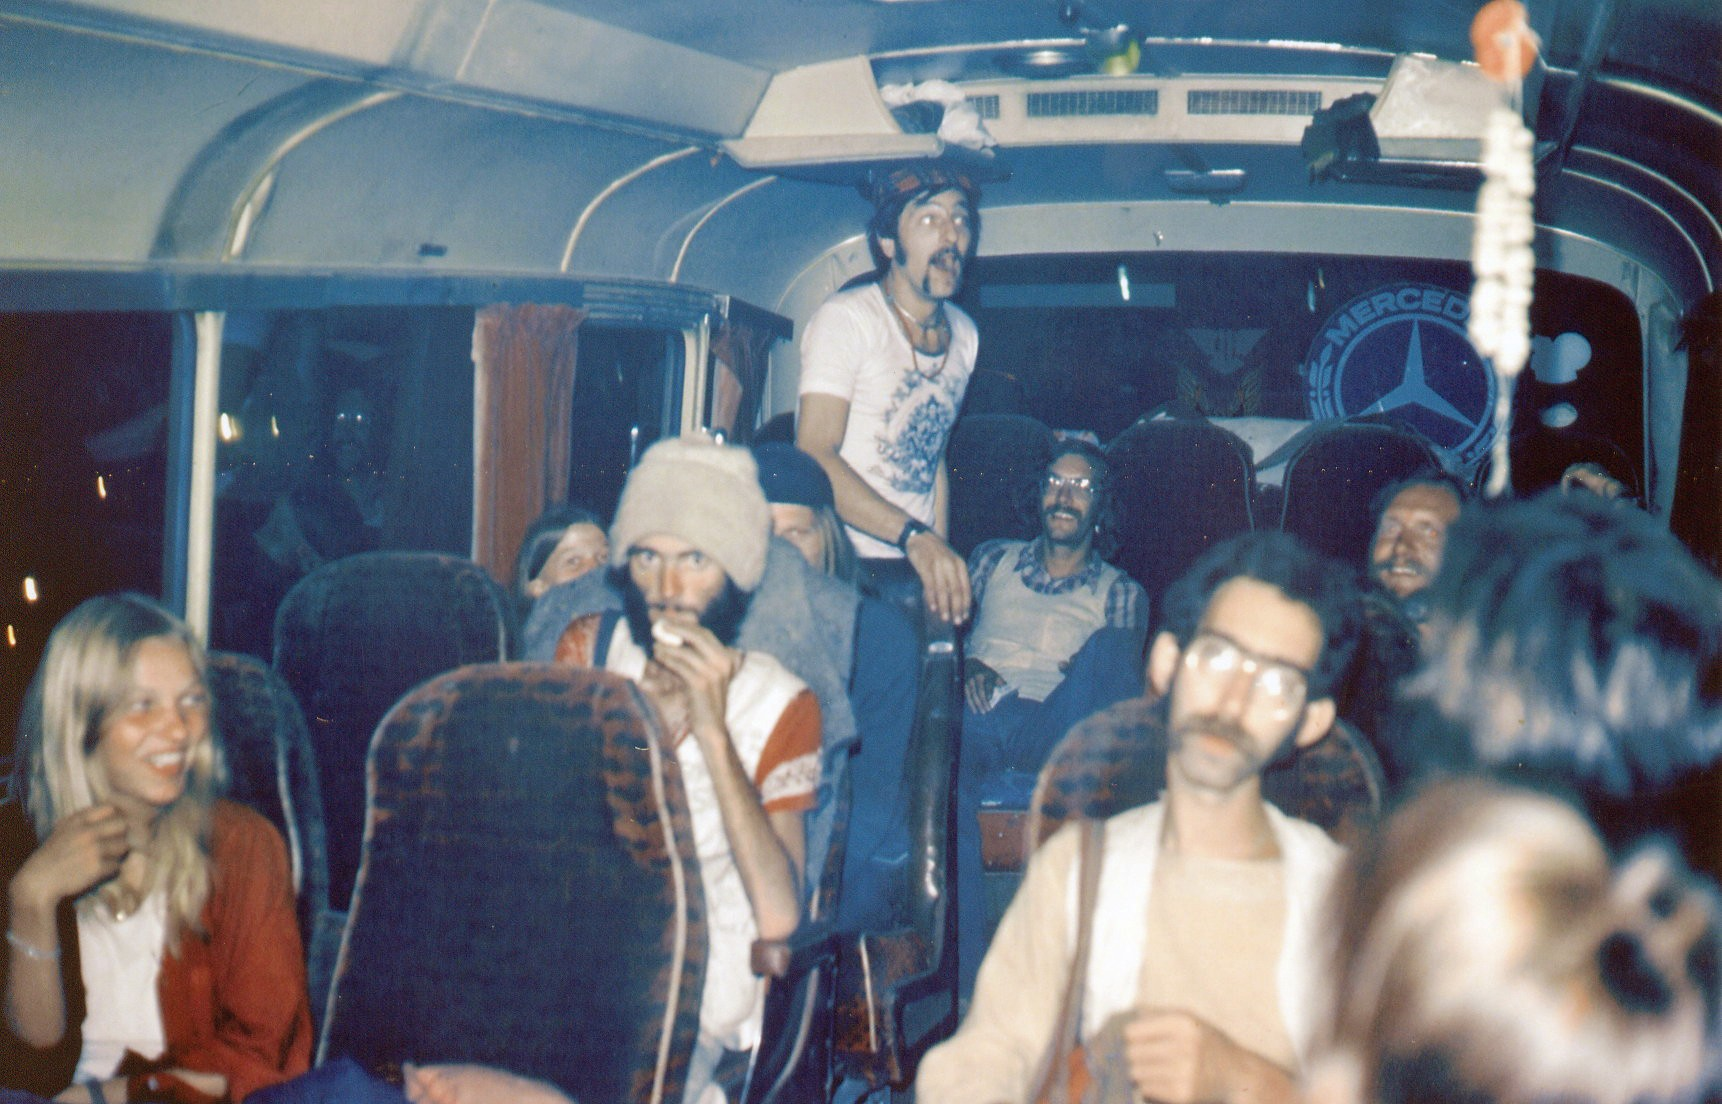 The 1970s Hippie Trail: drugs, danger, and a magical pudding shop ...